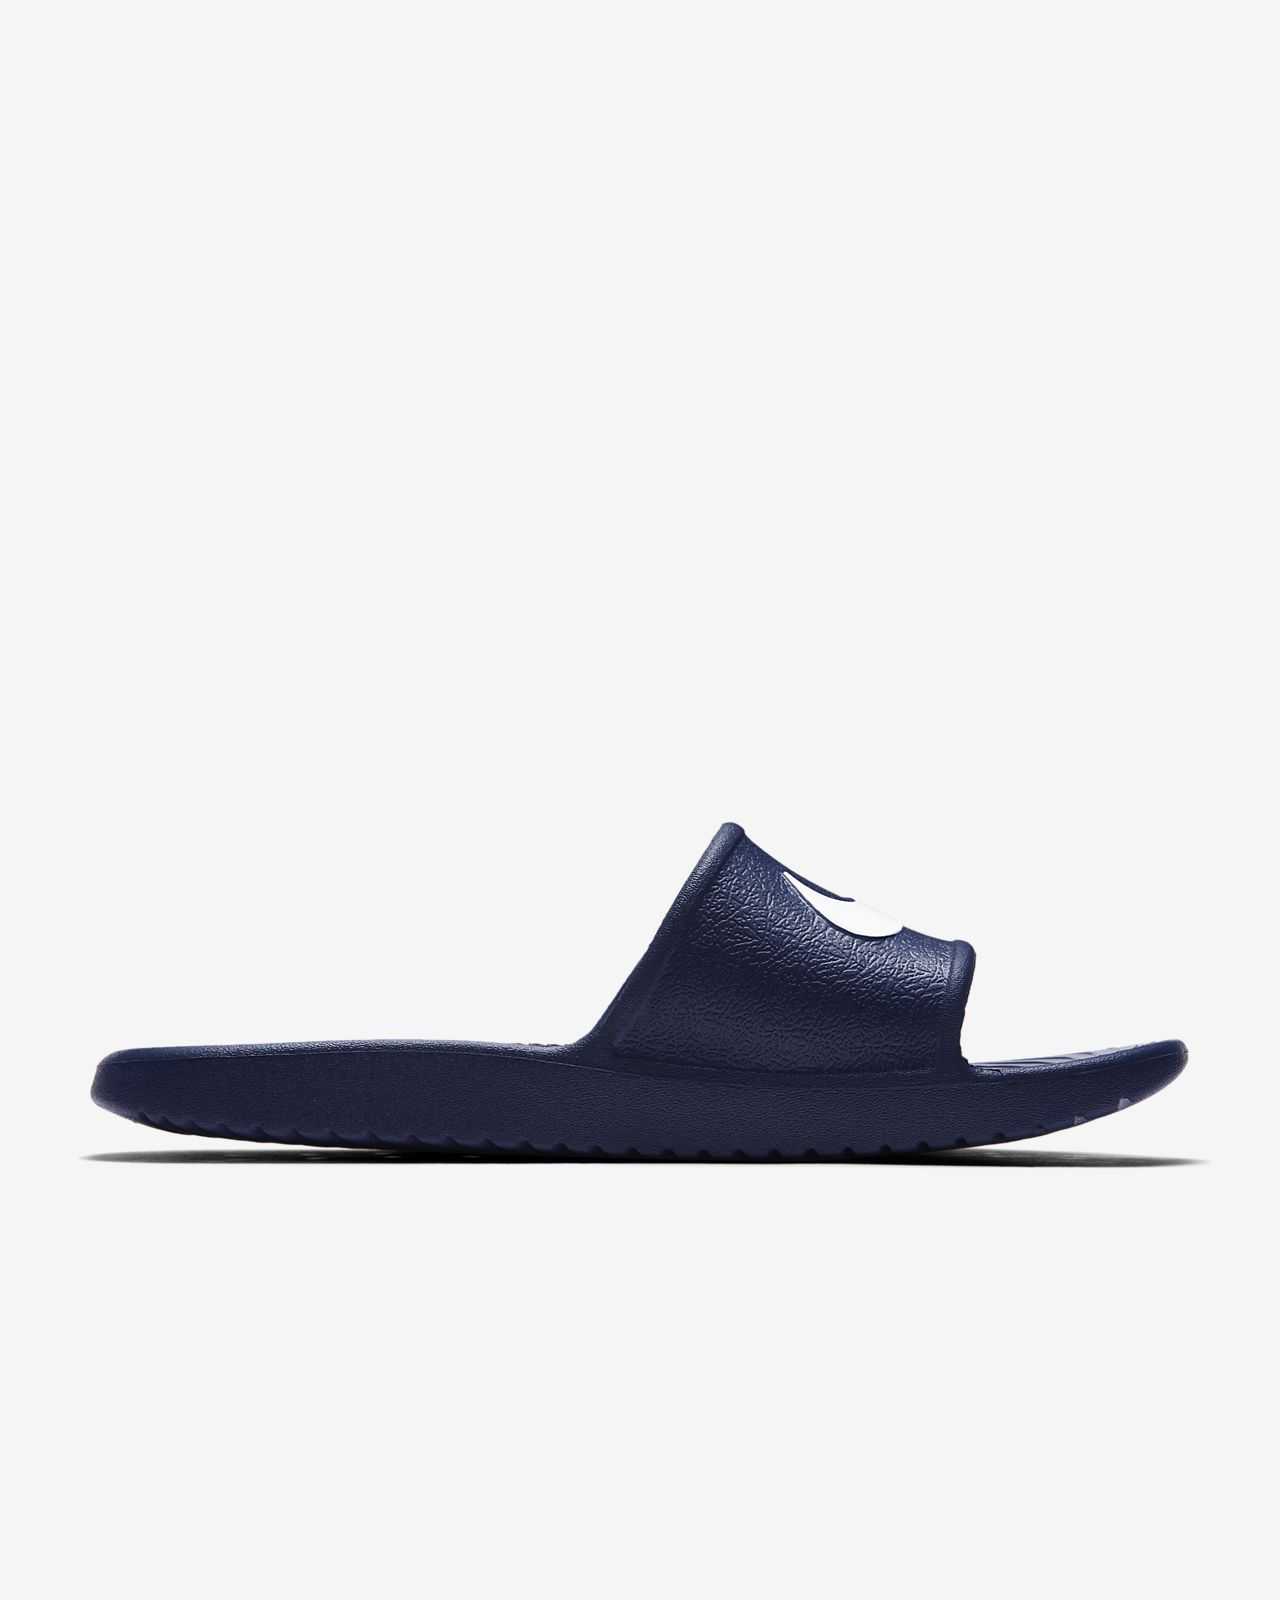 official photos dafea aa833 ... Claquette Nike Kawa Shower pour Homme